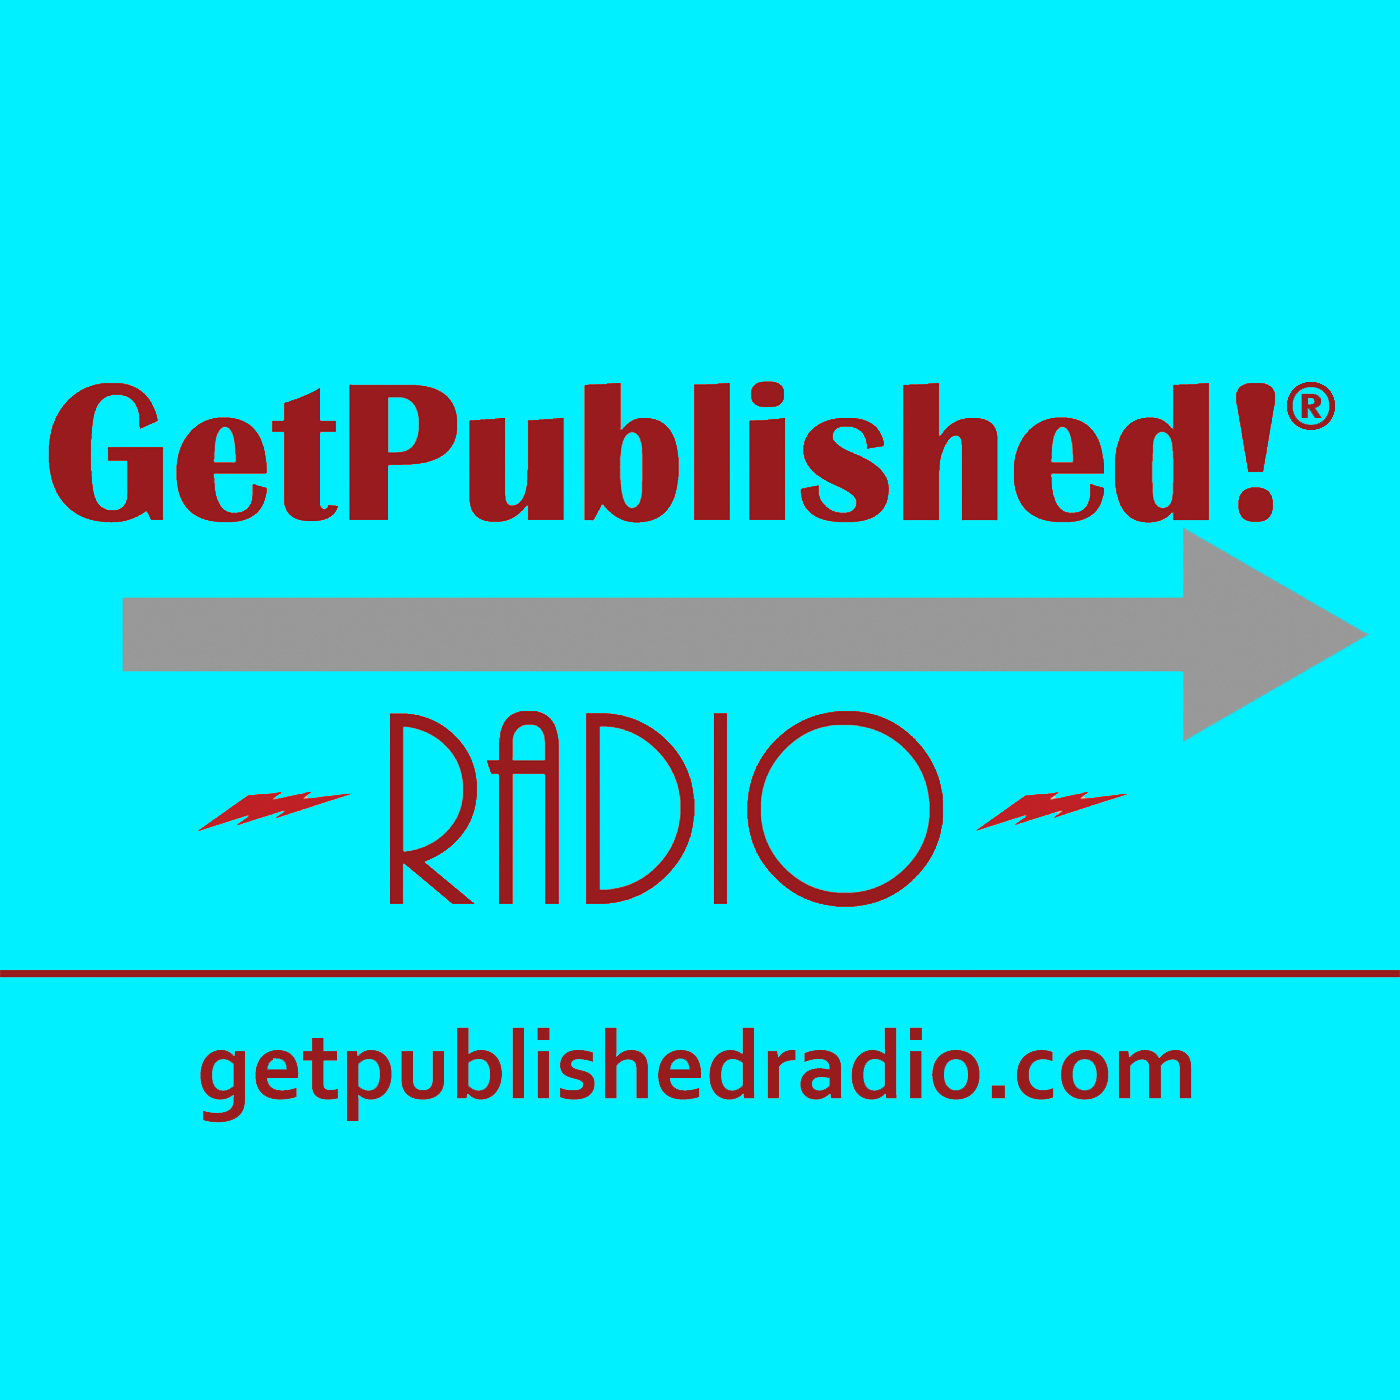 GetPublished! Radio show art